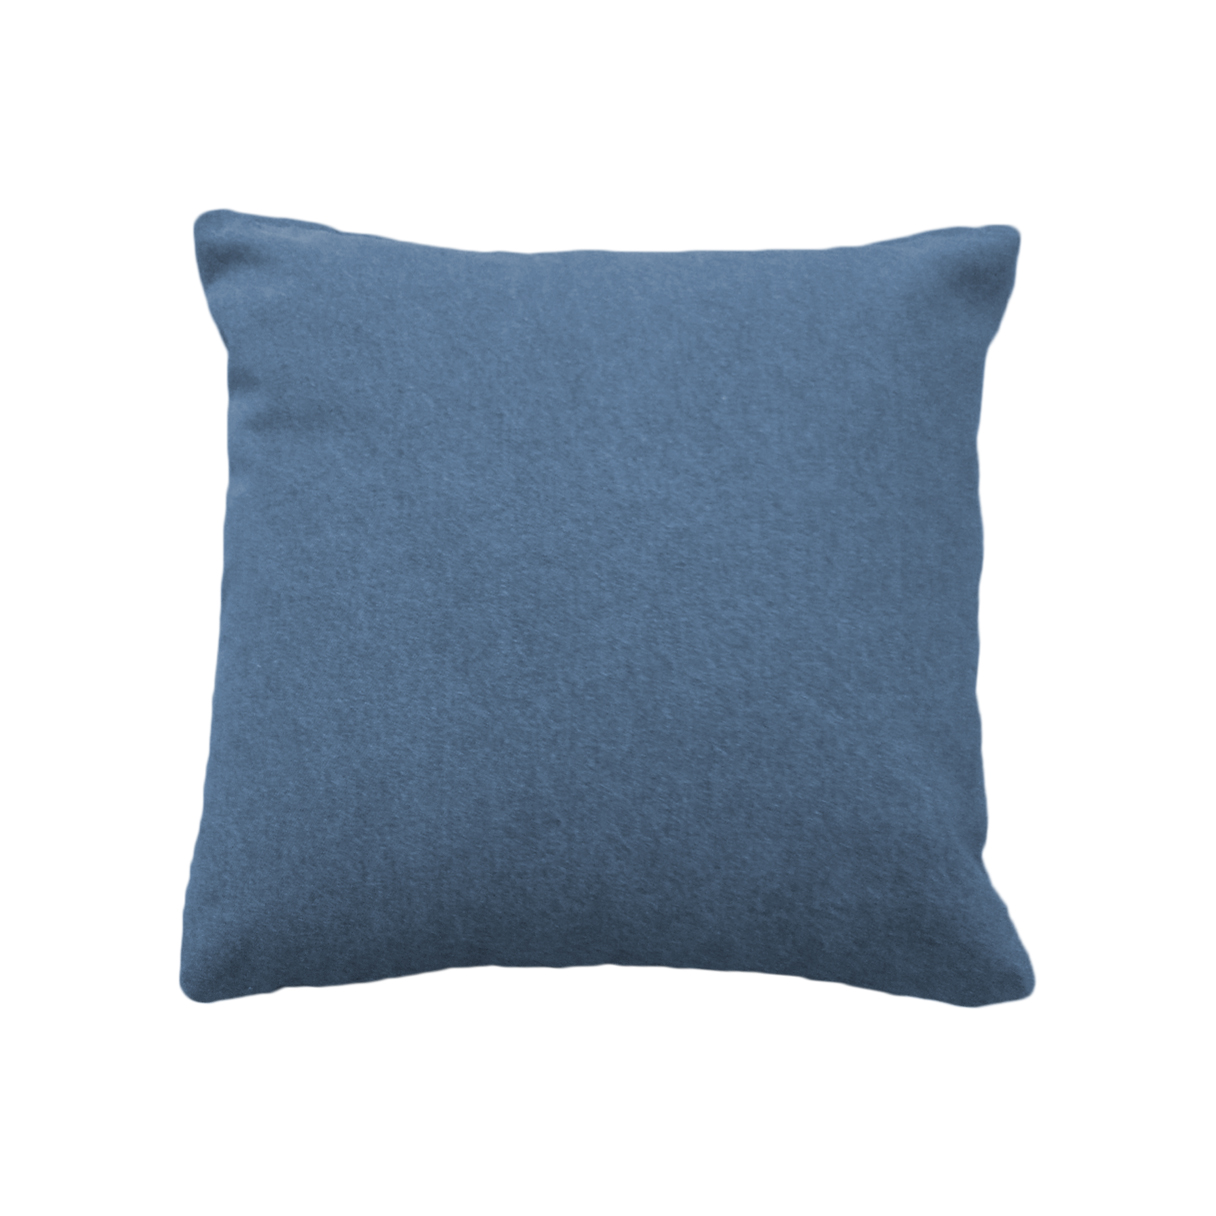 Quick Ship - 18x18 Throw Pillow - ReplaceMyCushions.com